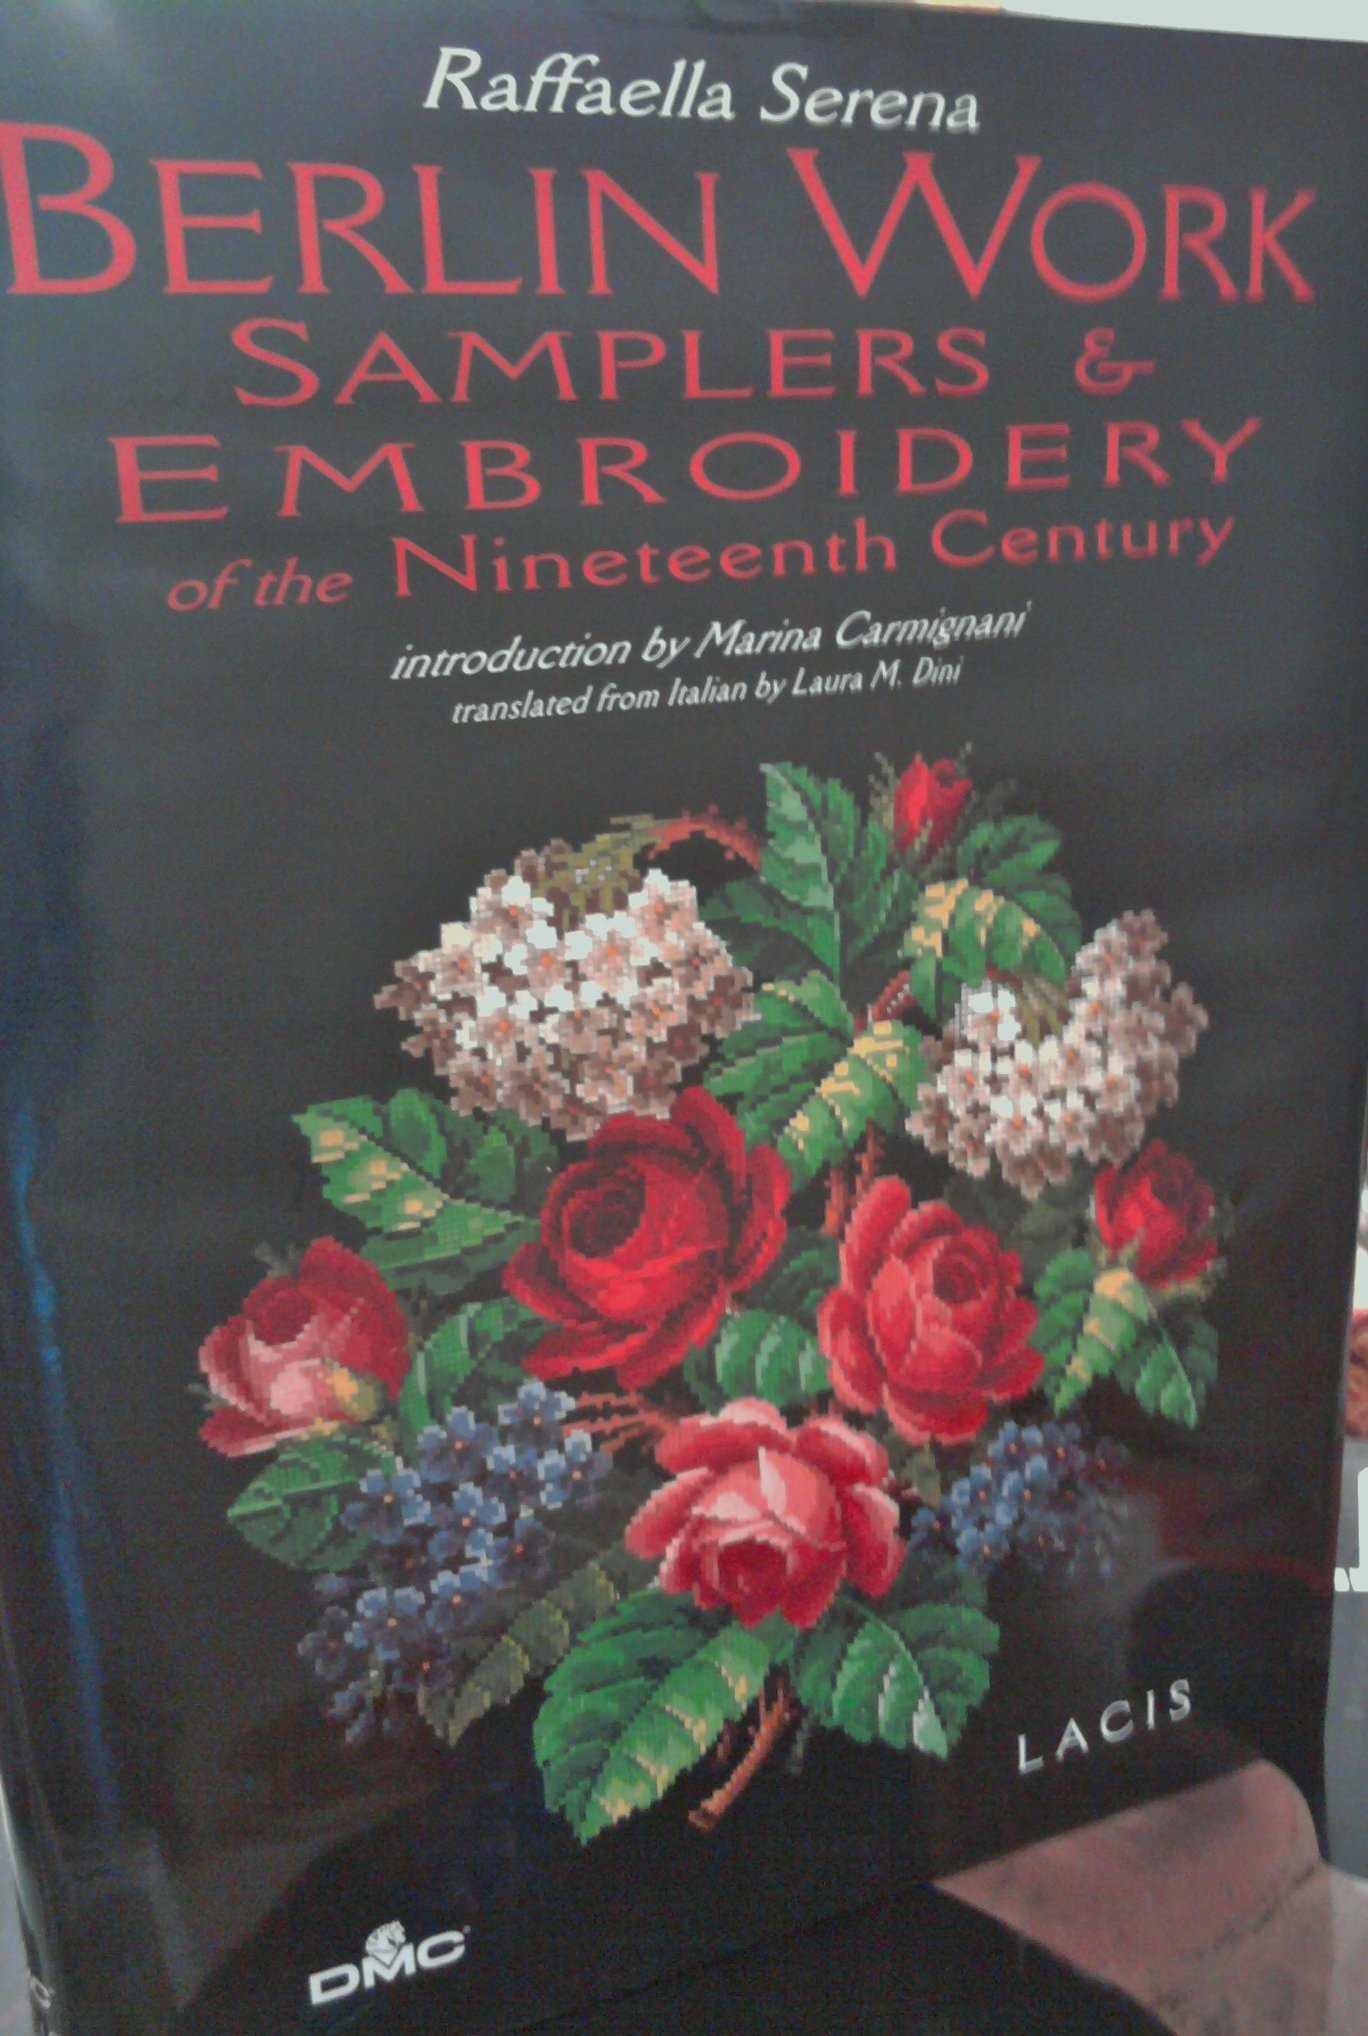 Berlin Work, Samplers & Embroidery of the Nineteenth Century